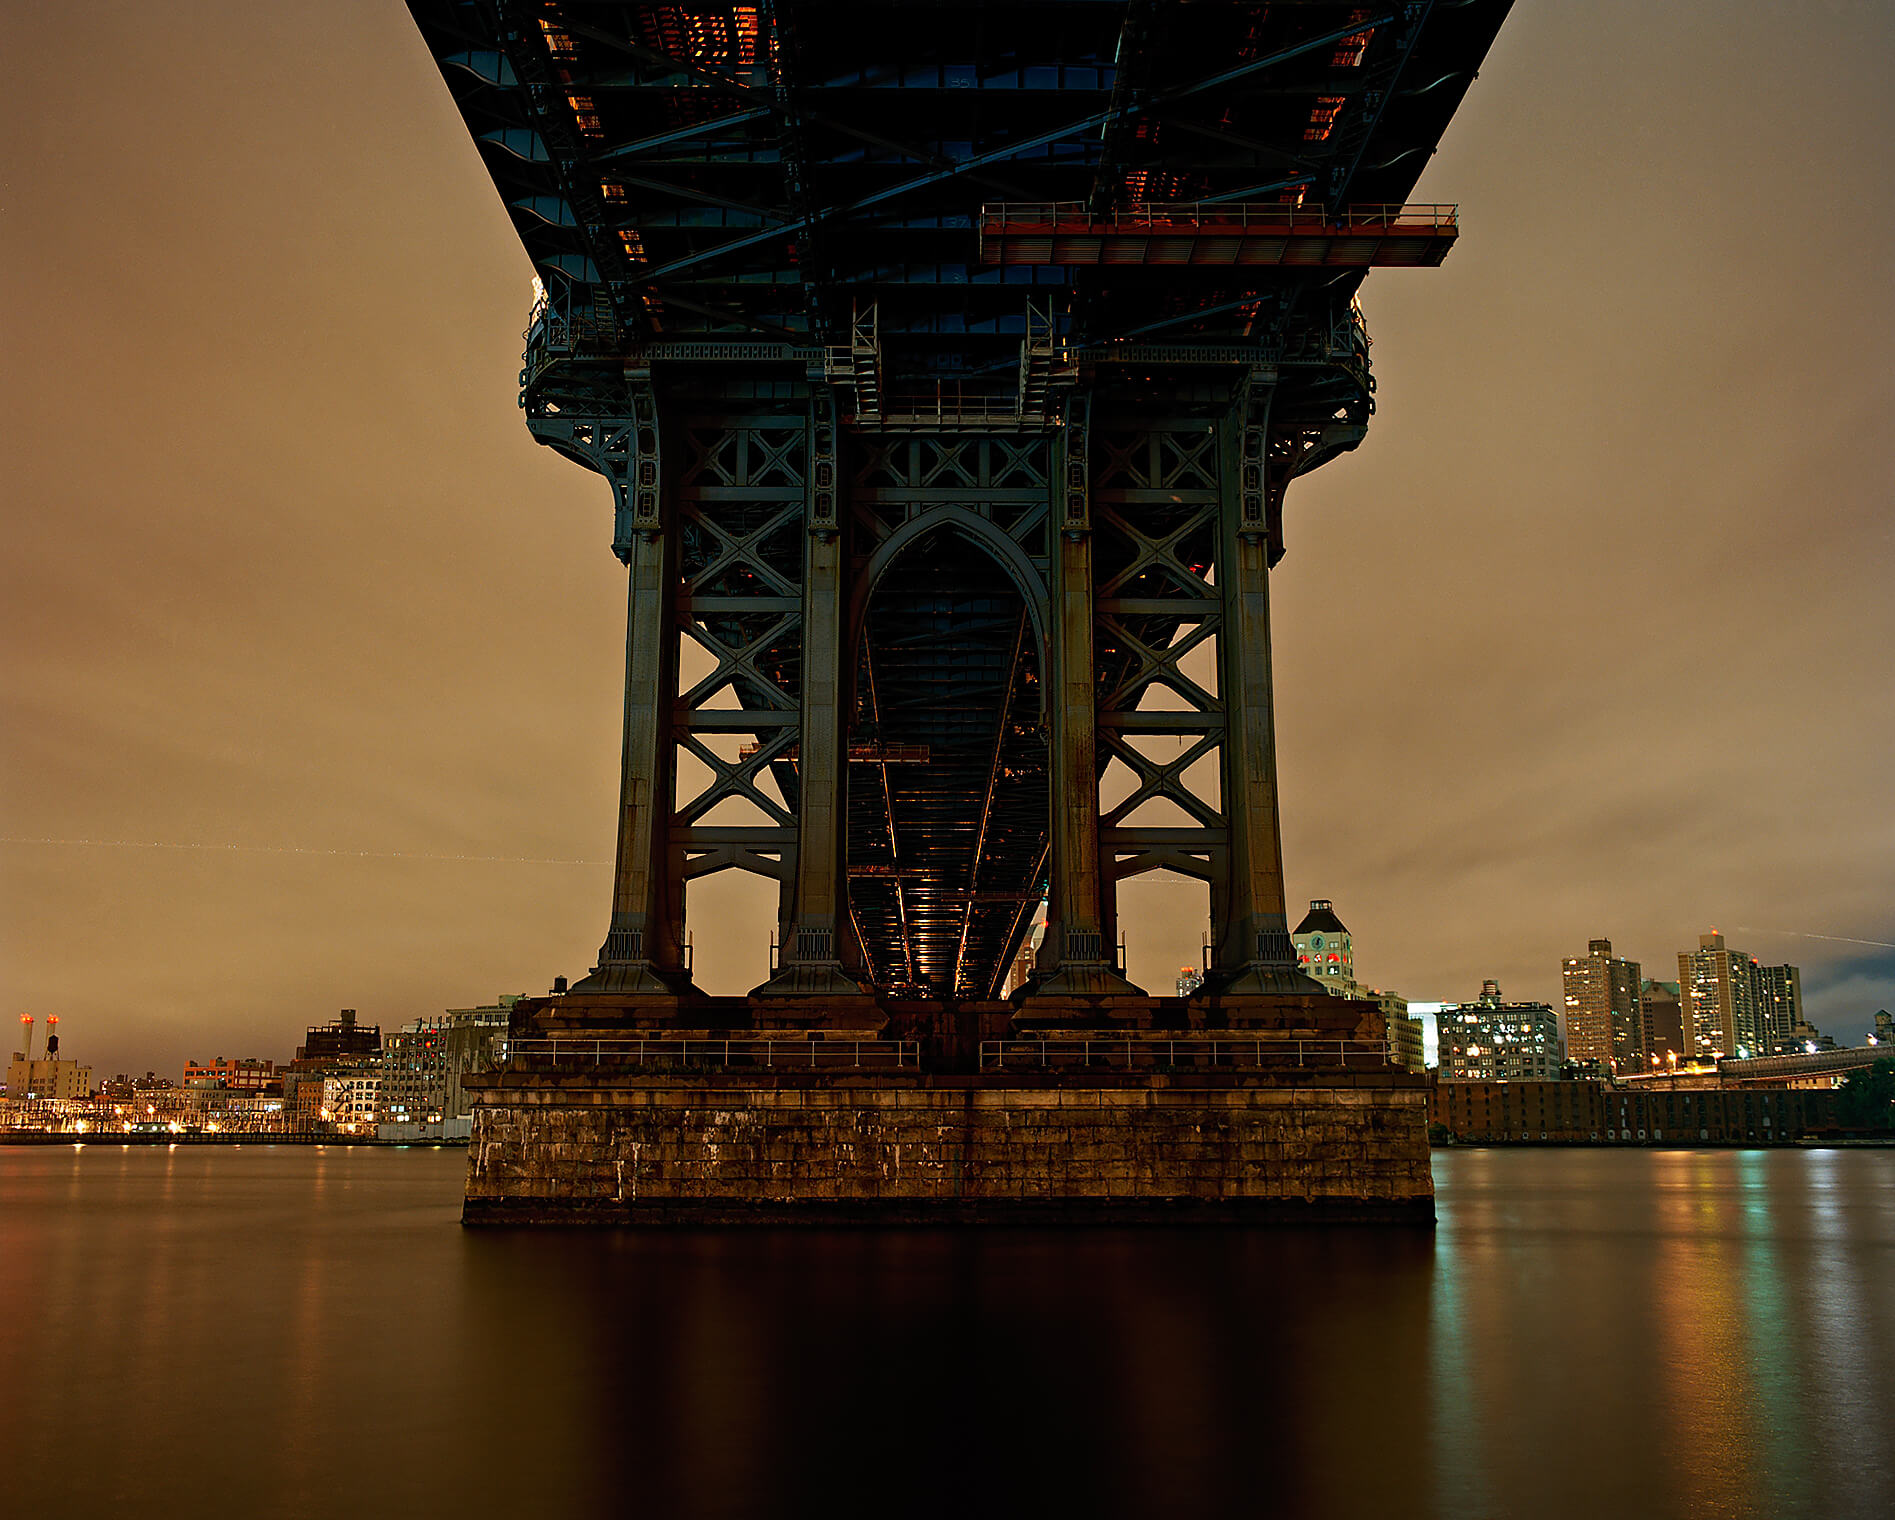 Night shot underneath the Manhattan Bridge in New York City